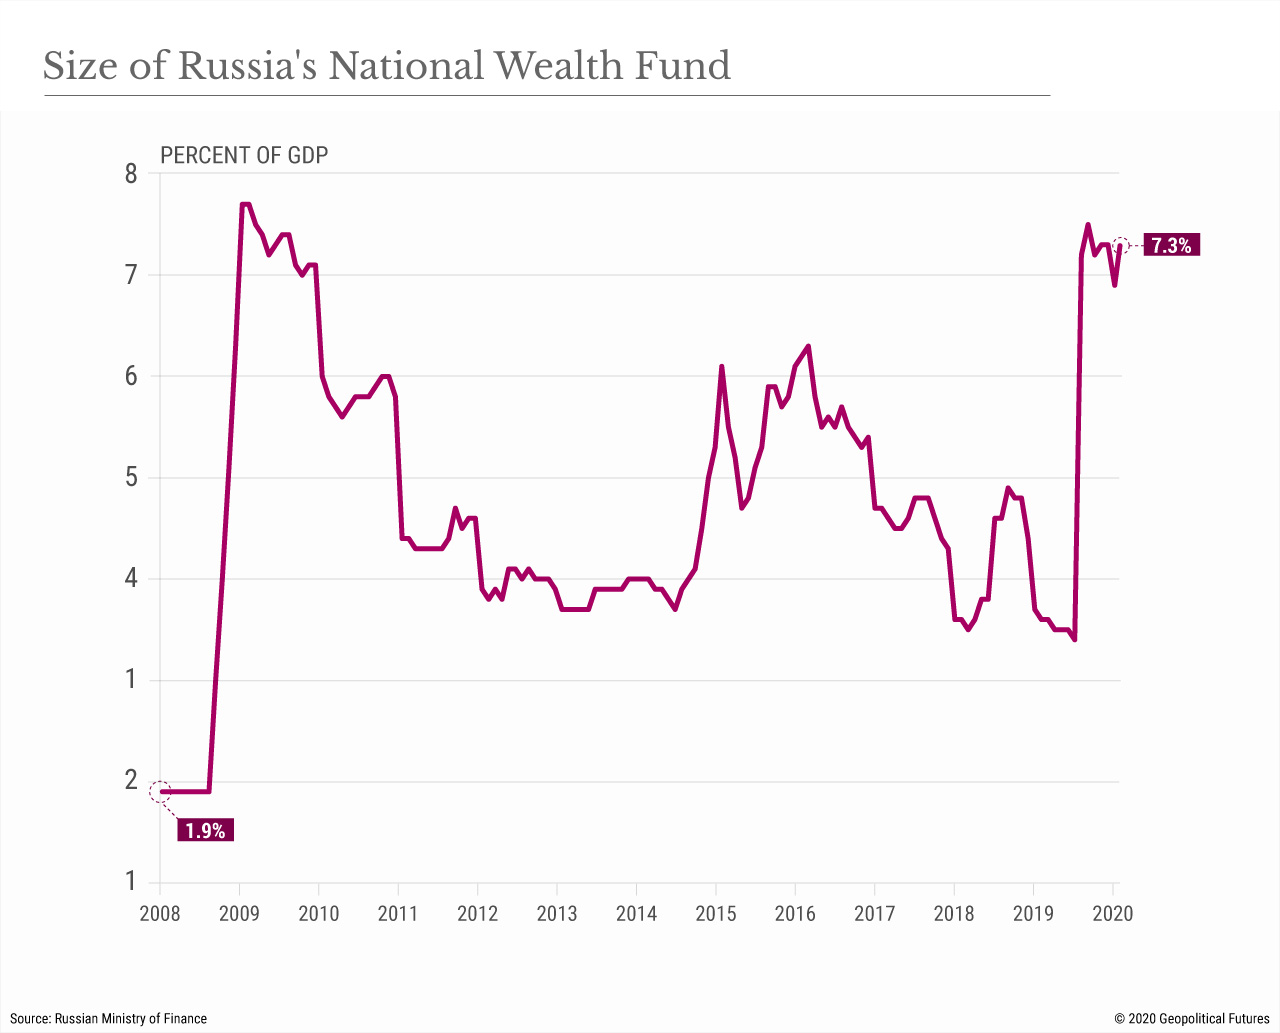 Size of Russia's National Wealth Fund